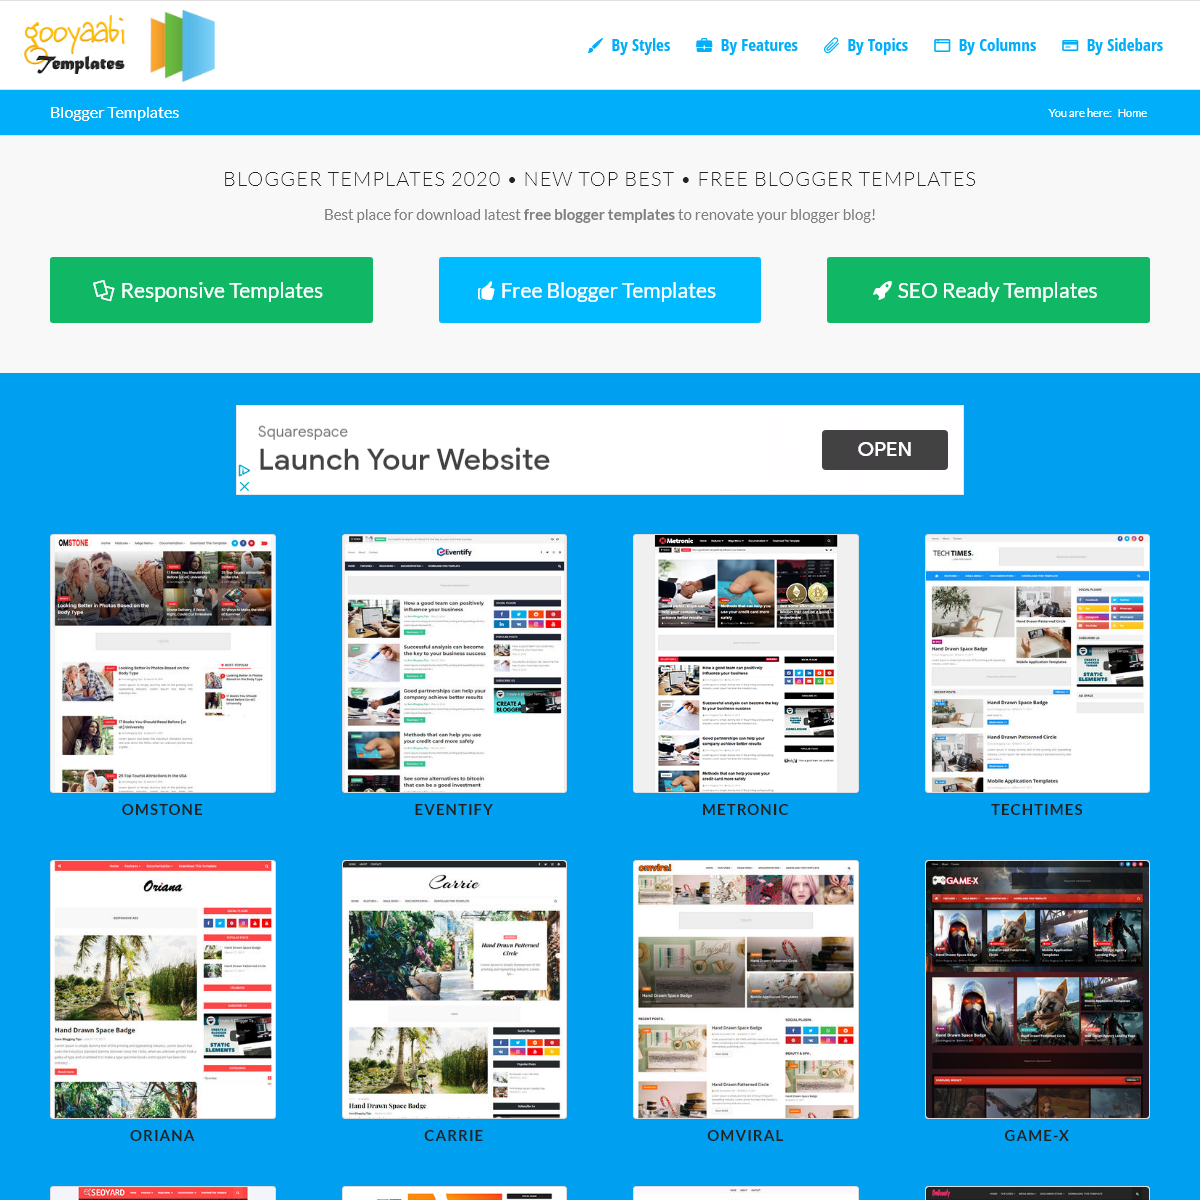 Blogger Templates 2020 • Top Best Free • New Templates